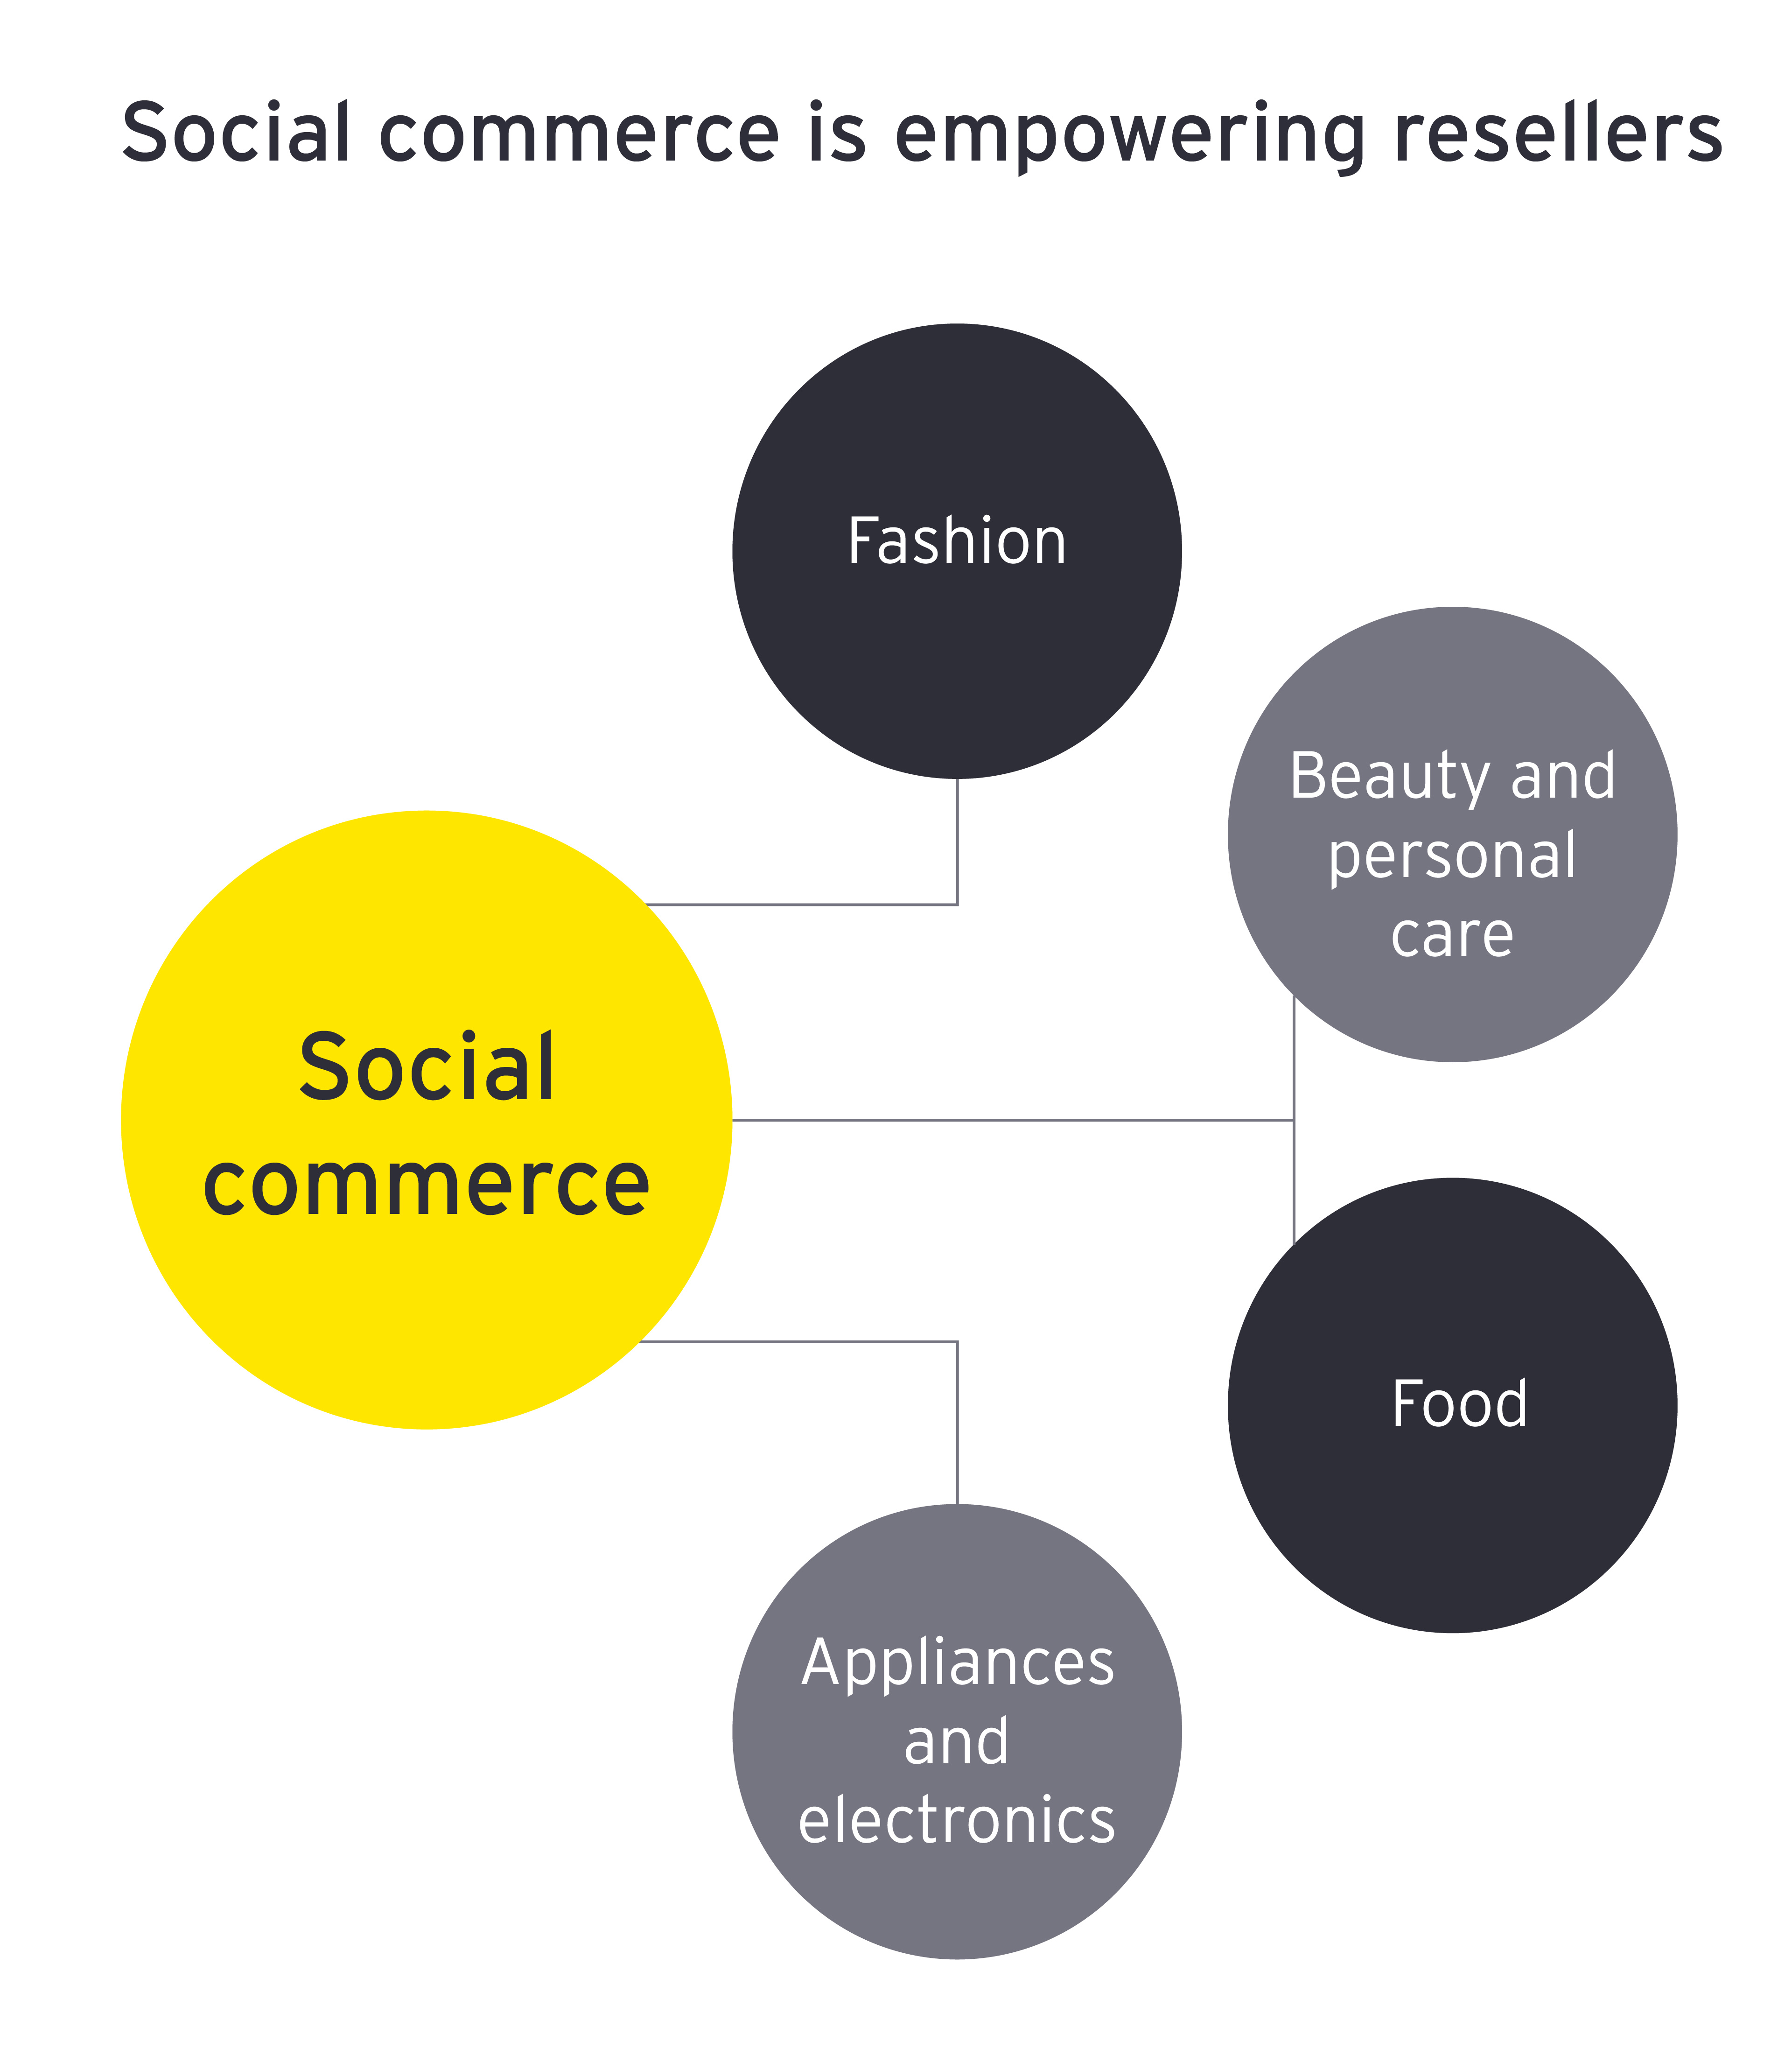 Social commerce is empowering resellers